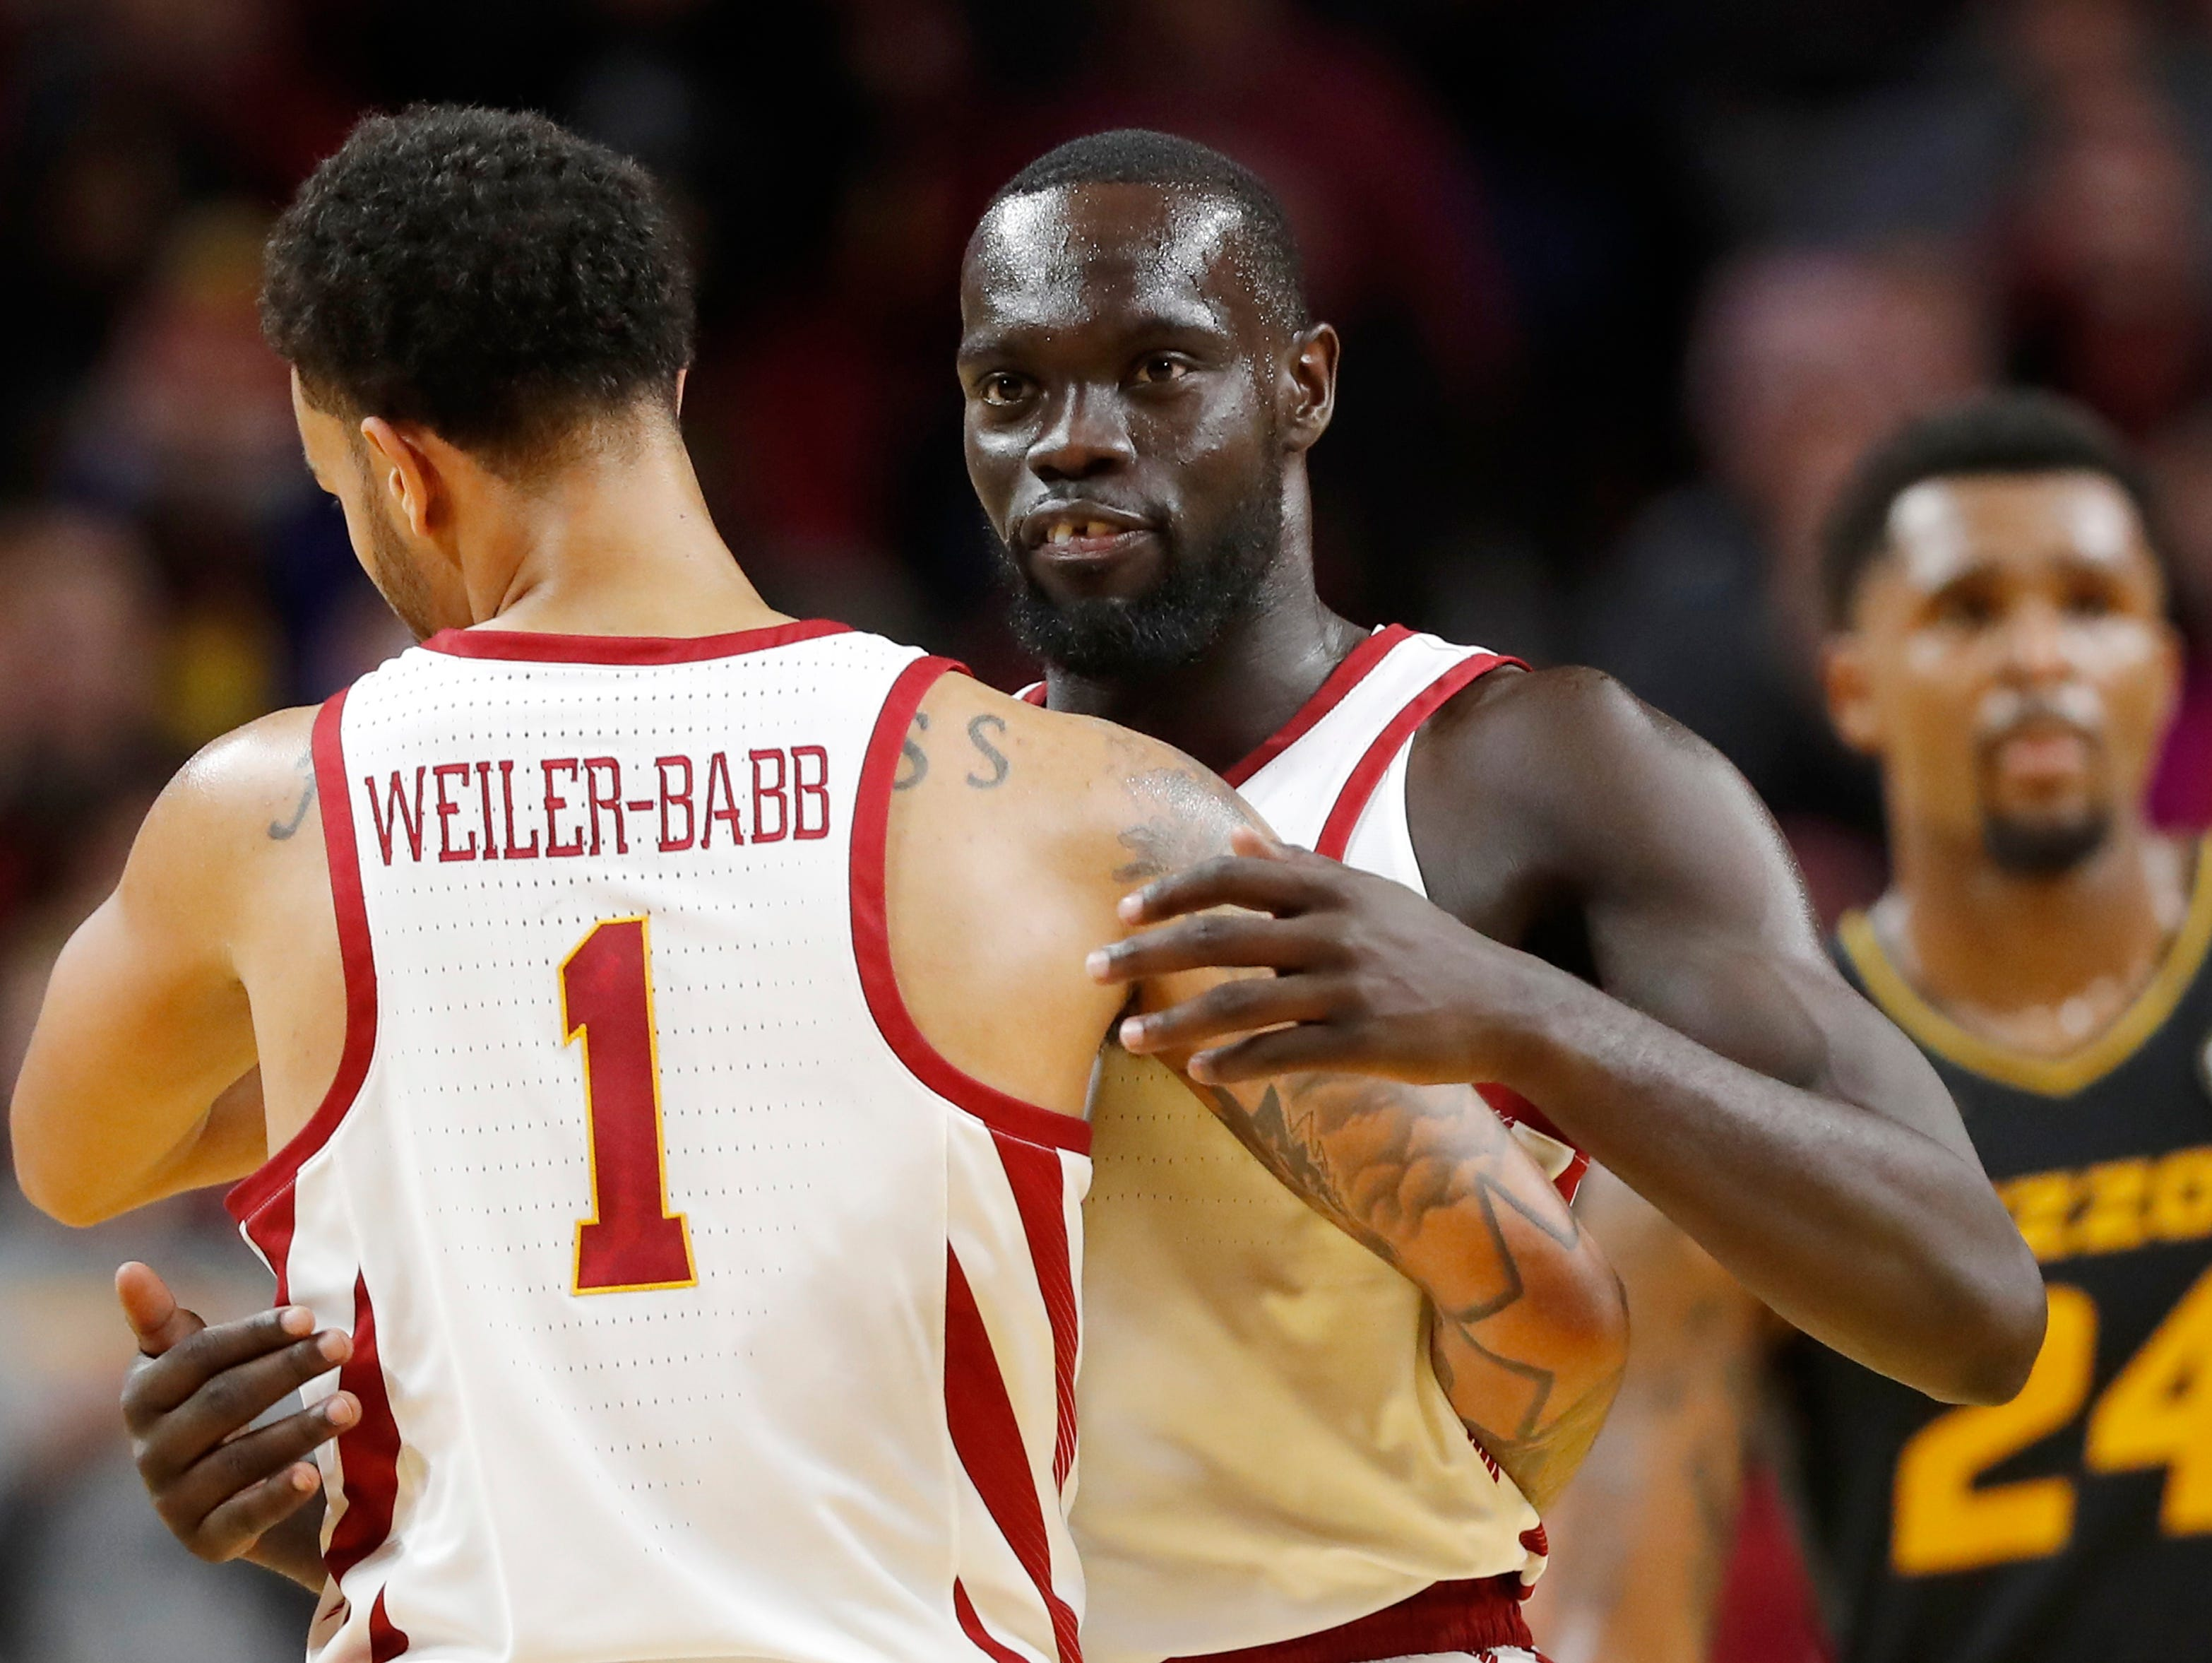 Iowa State guard Marial Shayok celebrates with teammate Nick Weiler-Babb (1) at the end of an NCAA college basketball game against Missouri, Friday, Nov. 9, 2018, in Ames, Iowa. Iowa State won 76-59.